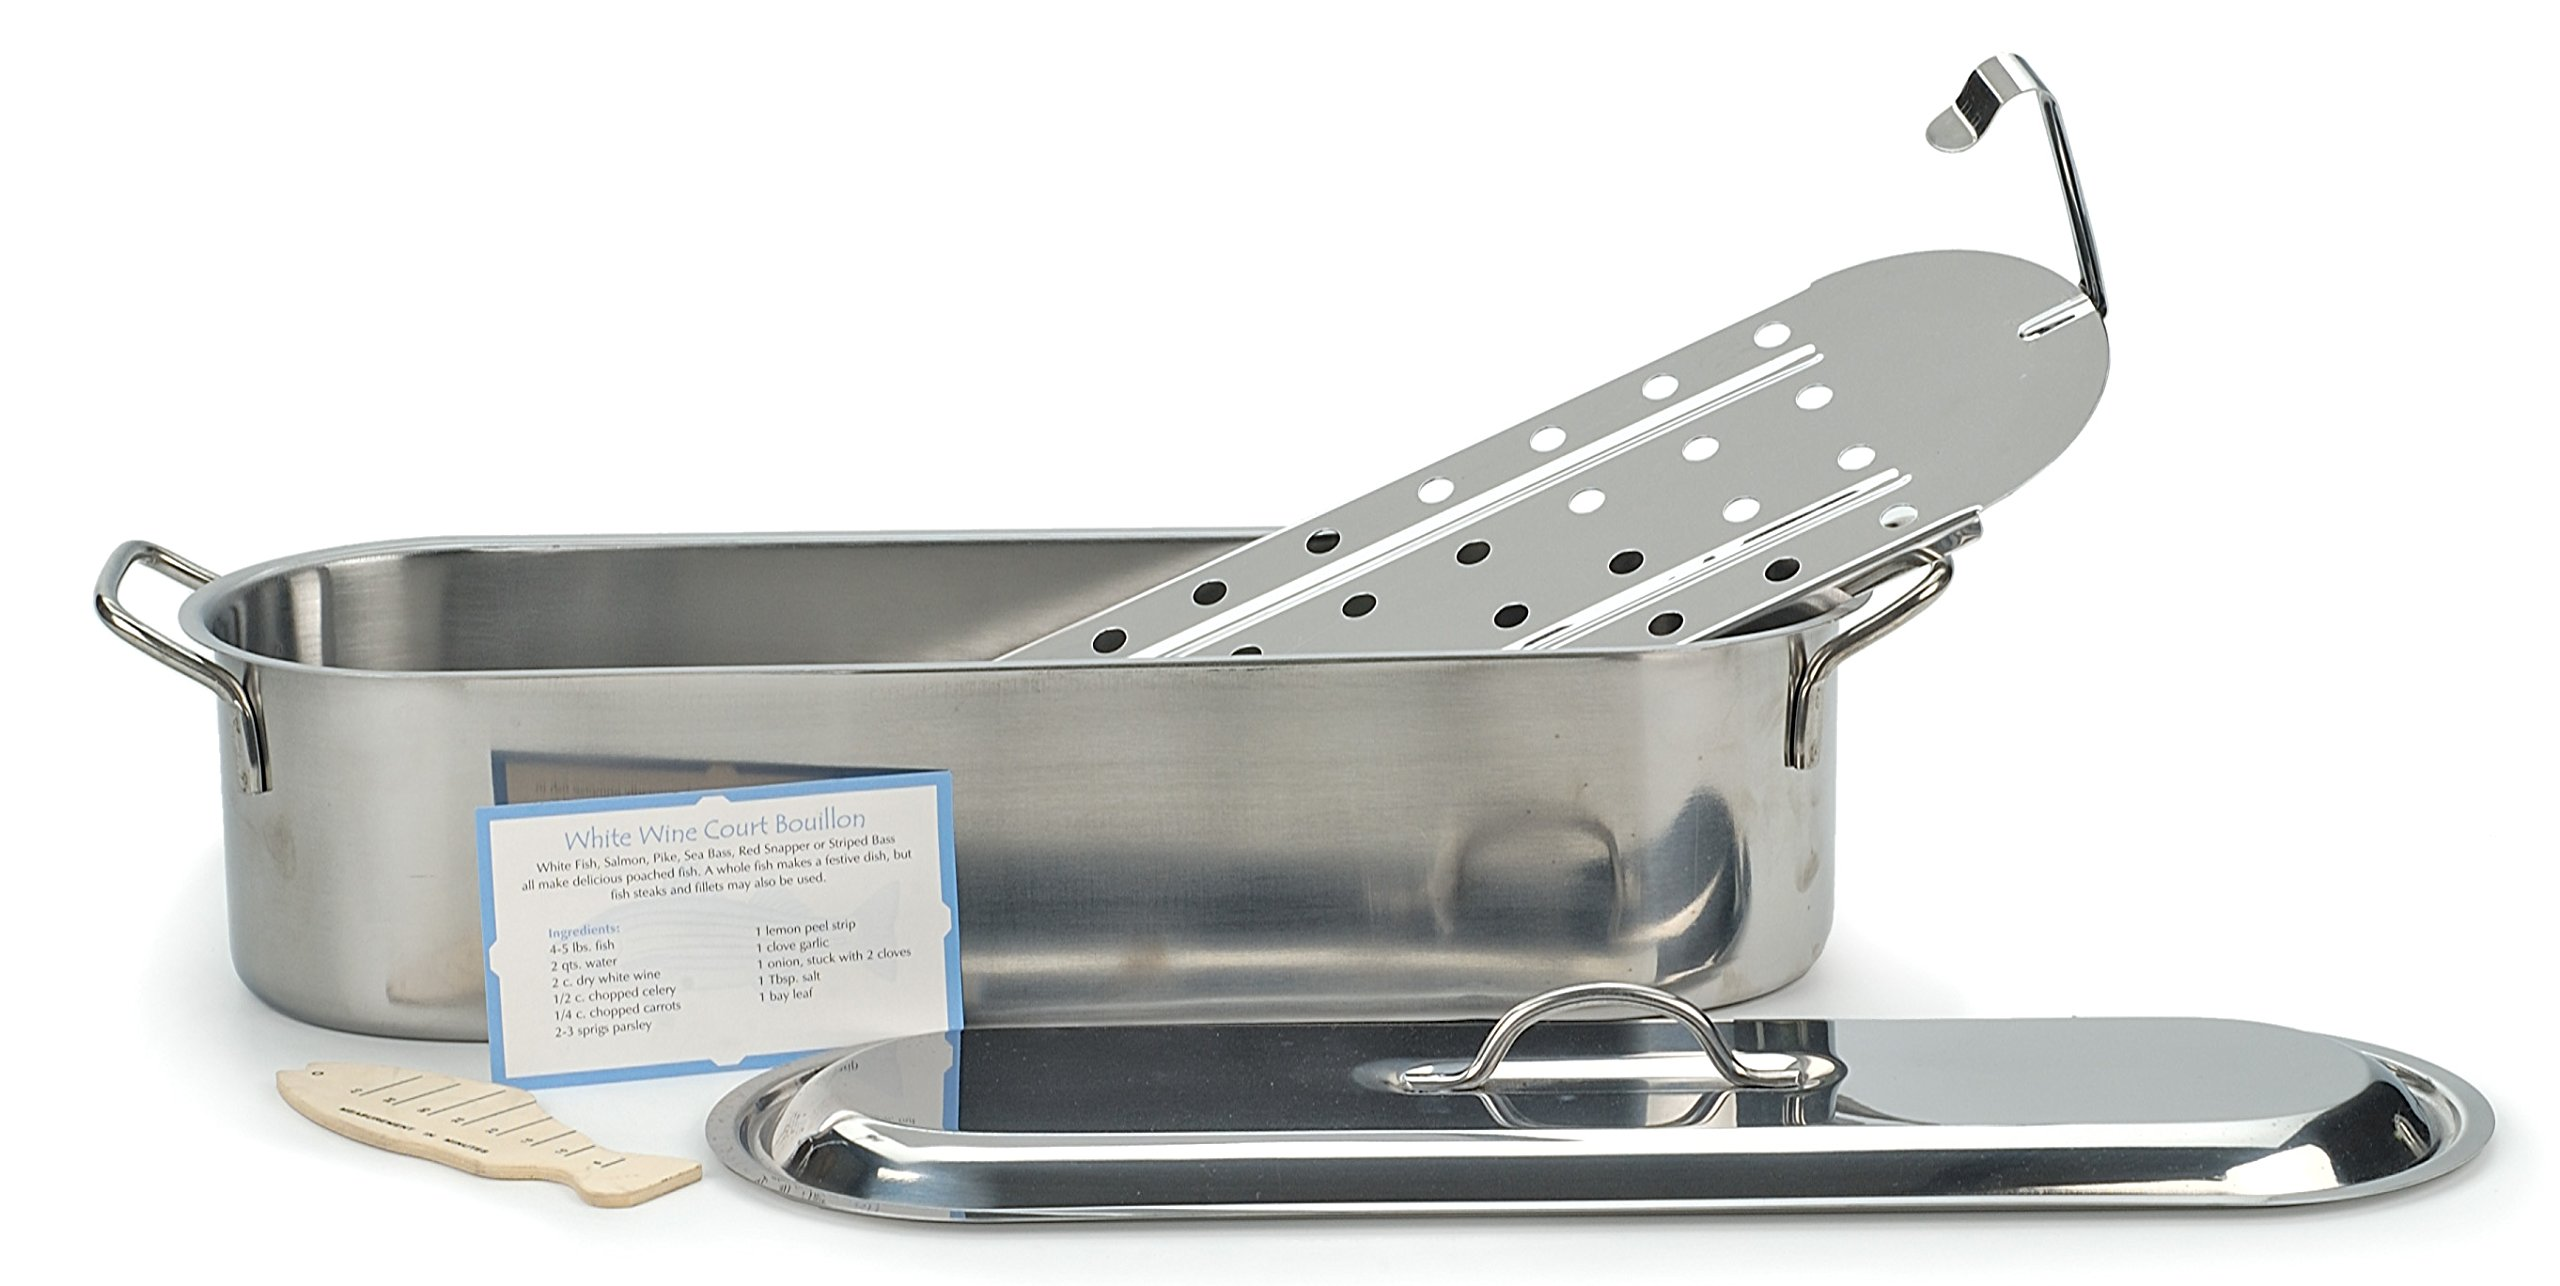 RSVP ST-20P Endurance Stainless Steel Fish Poacher, 20-inches by RSVP International (Image #1)